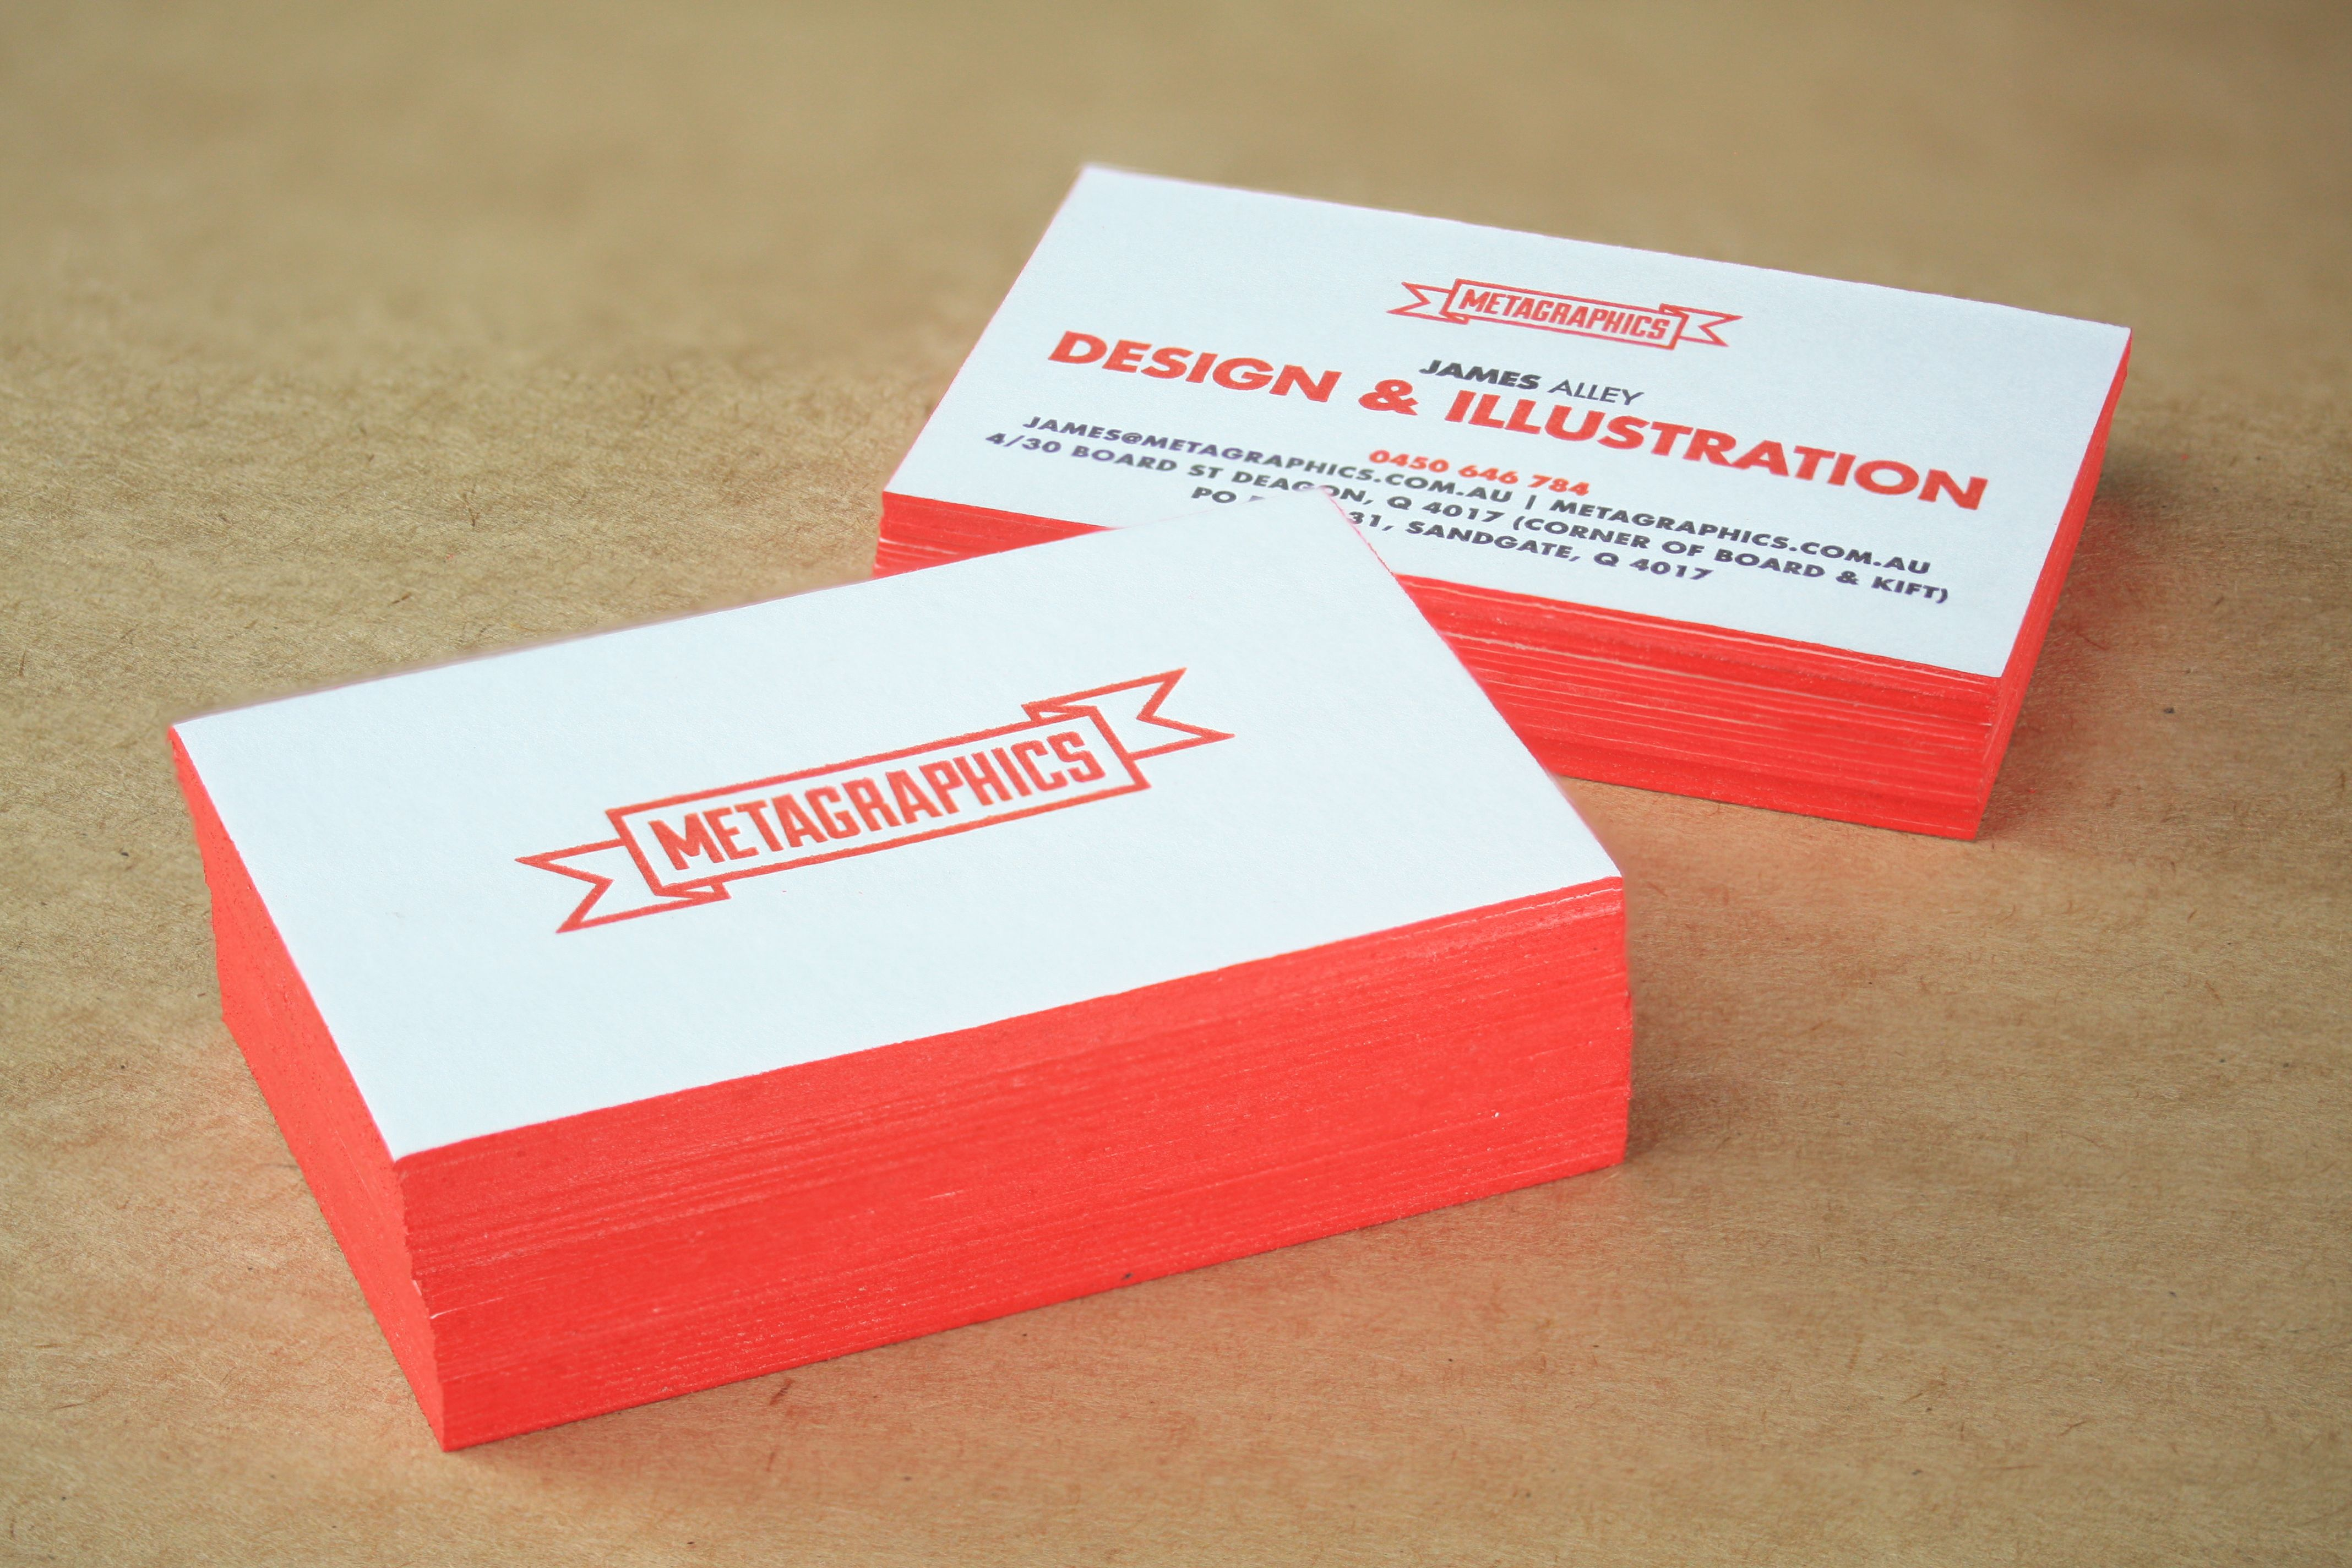 letterpress printed business cards for metagraphics with edge